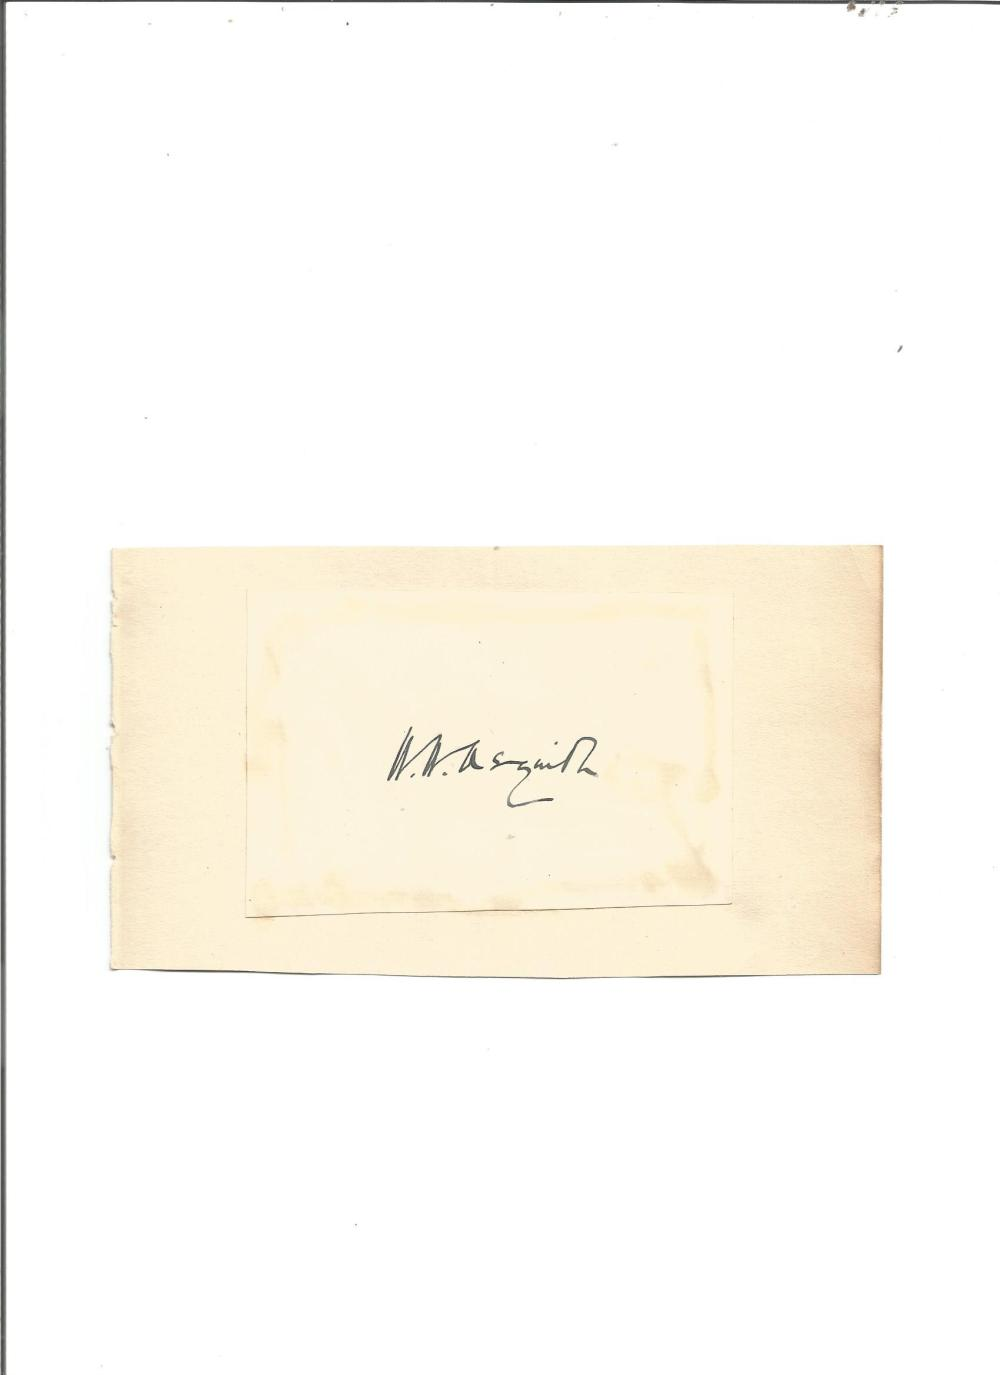 H H Asquith signature piece. British Prime Minister 1908-1916. Good Condition. All signed pieces